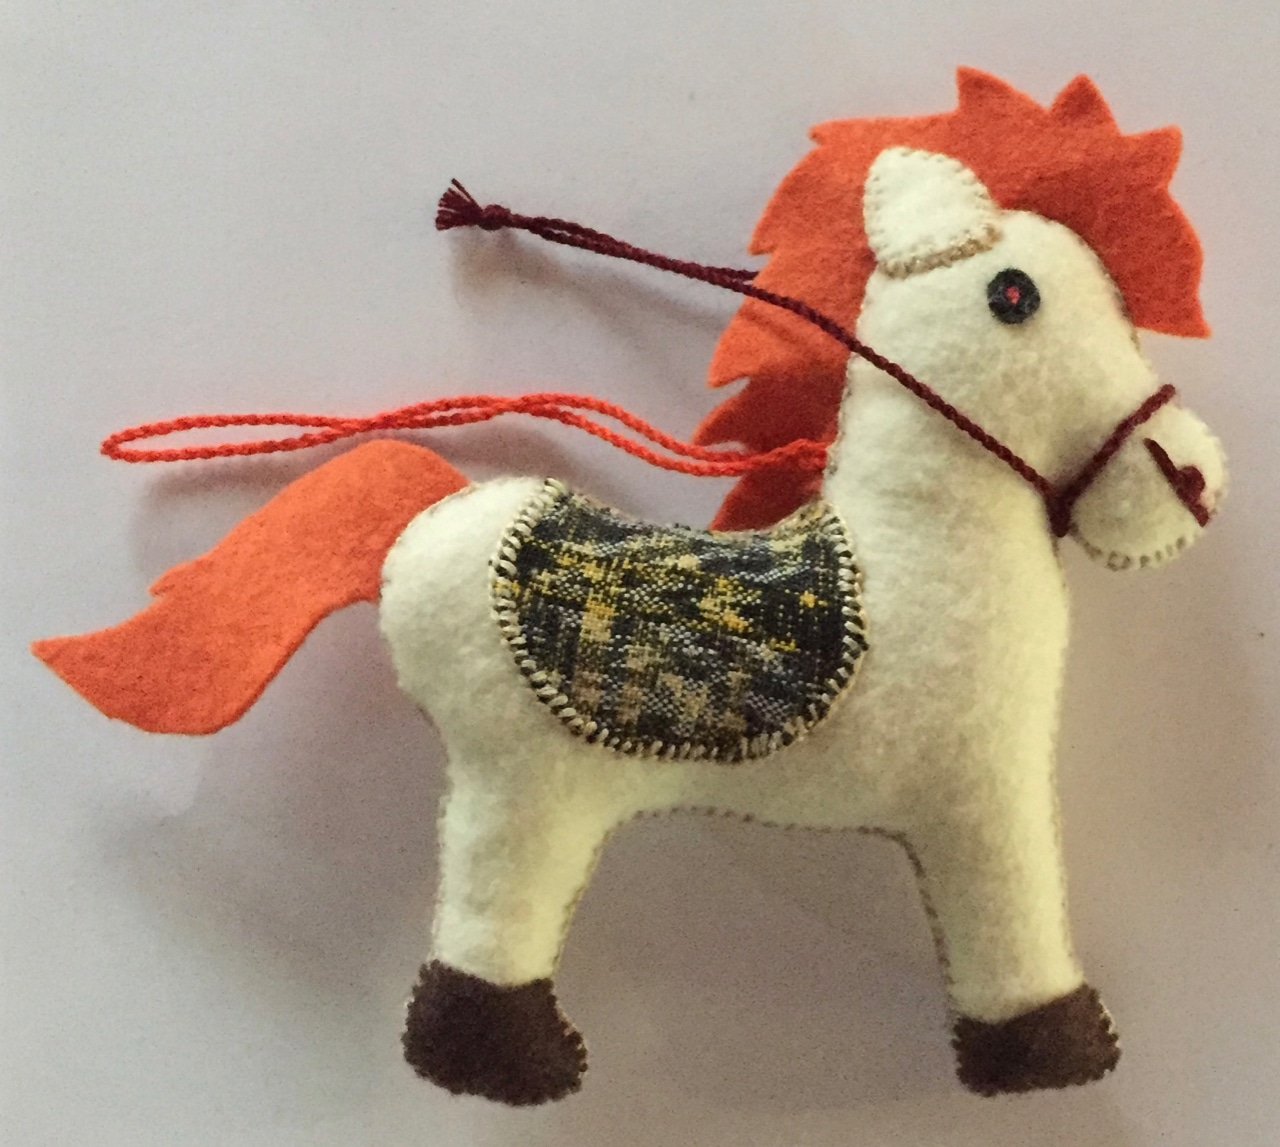 Horse Ornament - Felt and Repurposed Traditional Fabric